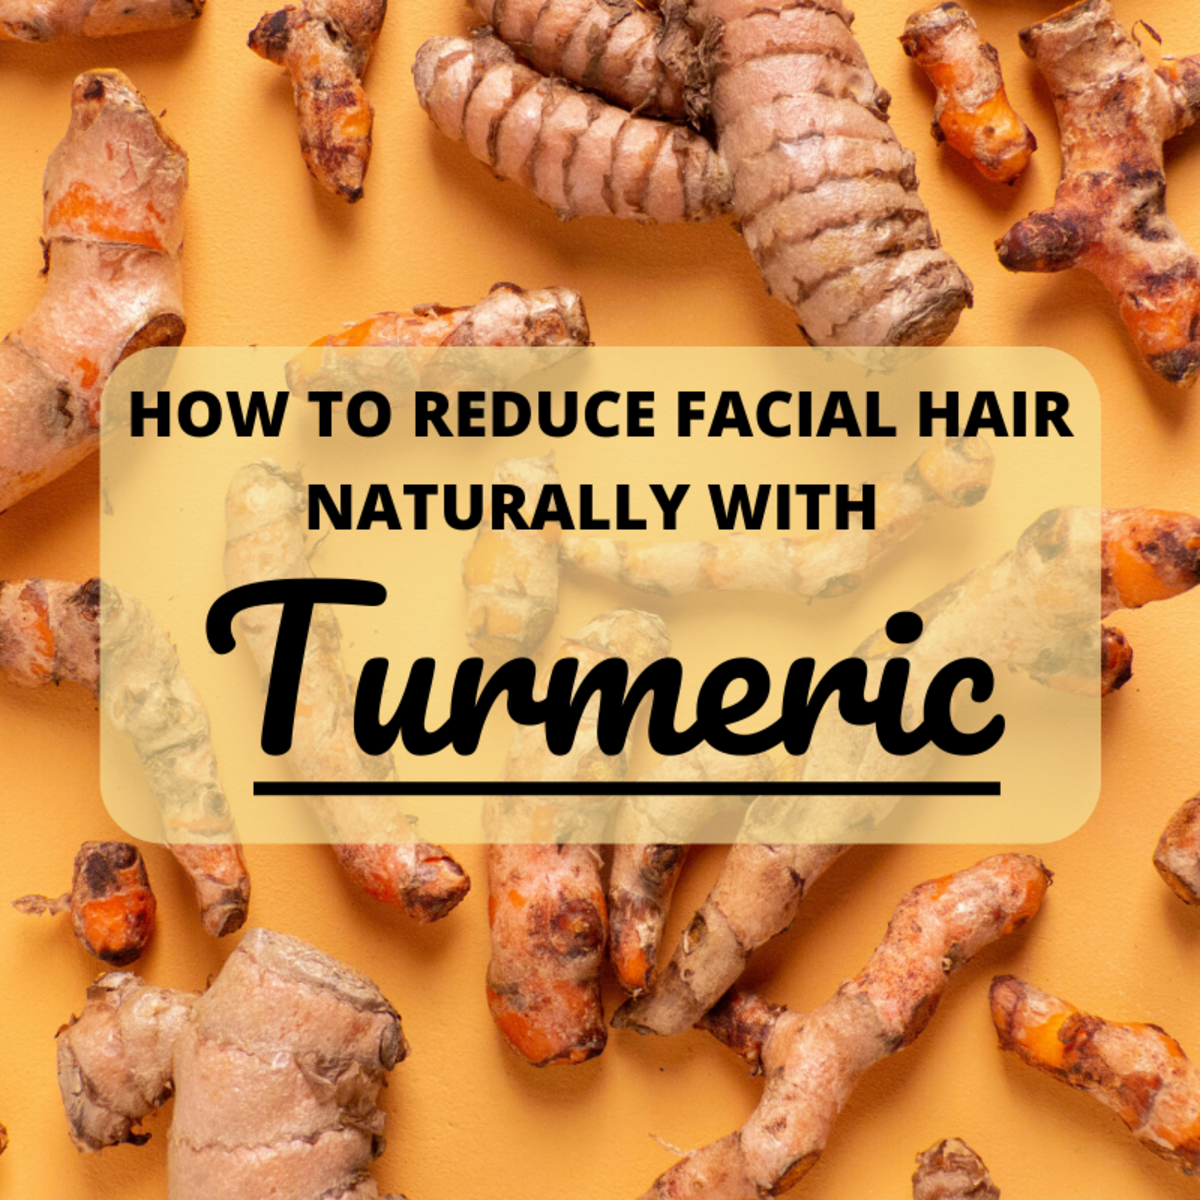 How to Reduce Facial Hair Naturally With Turmeric